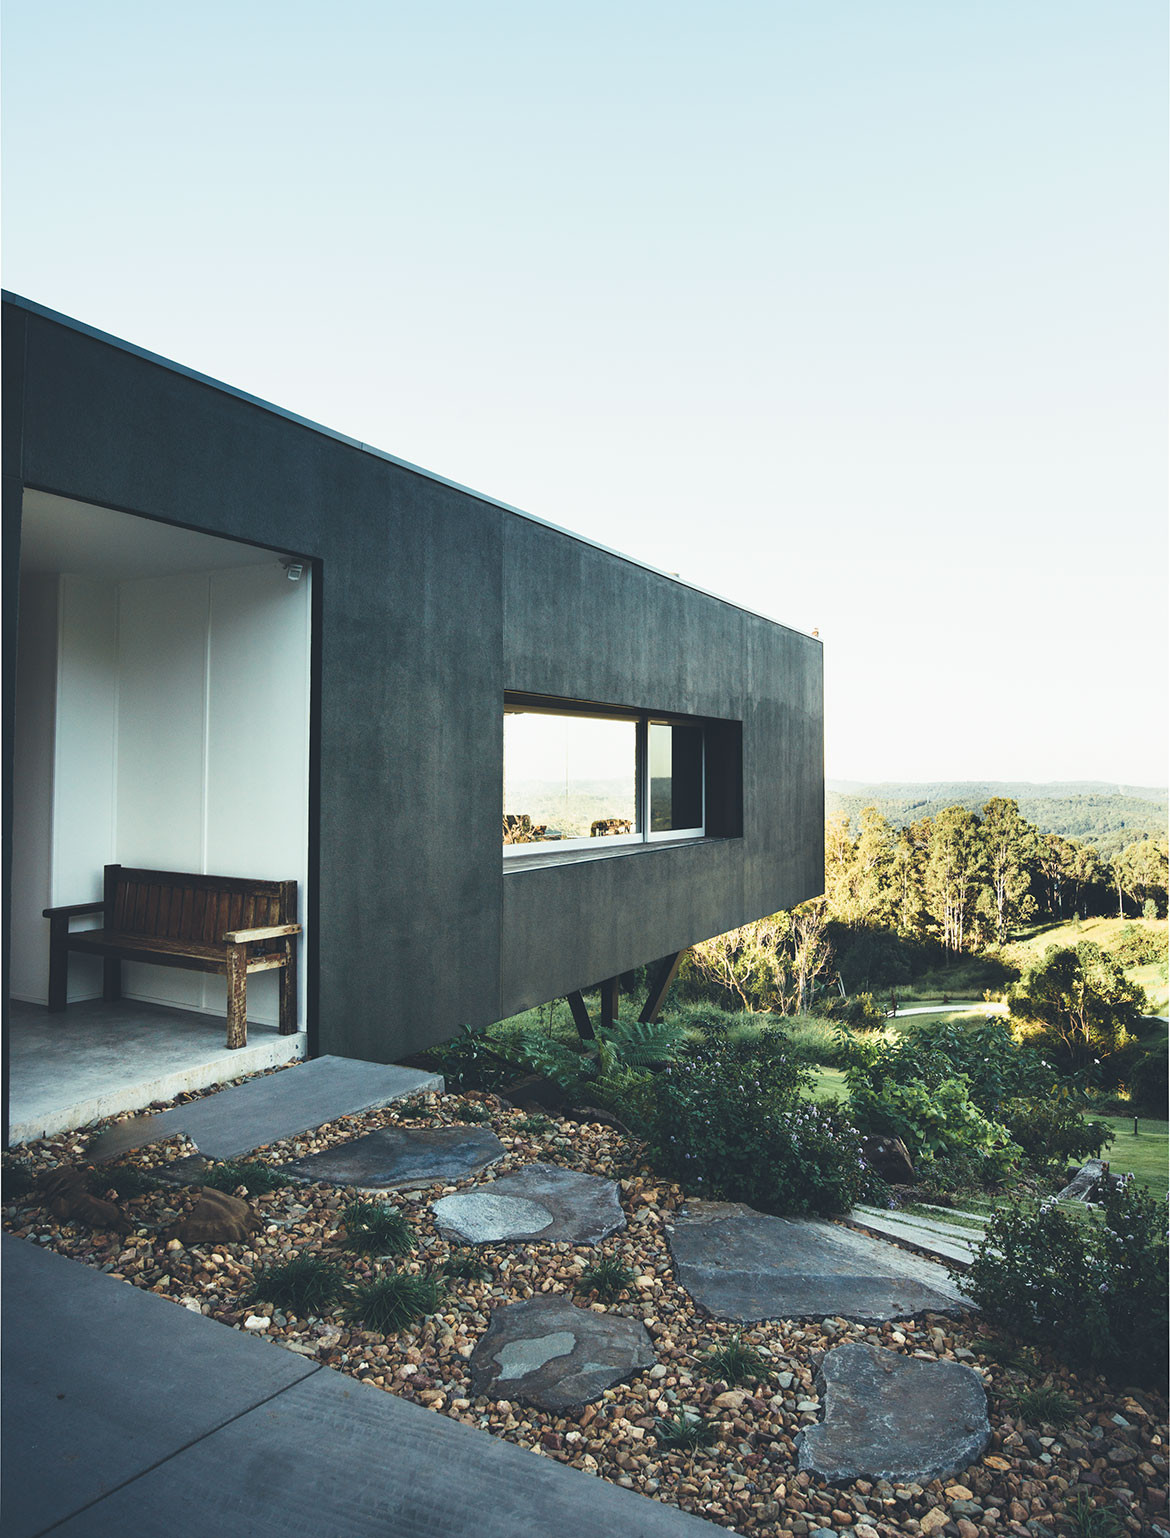 Stealth House Teeland Architects cc Jared Fowler view